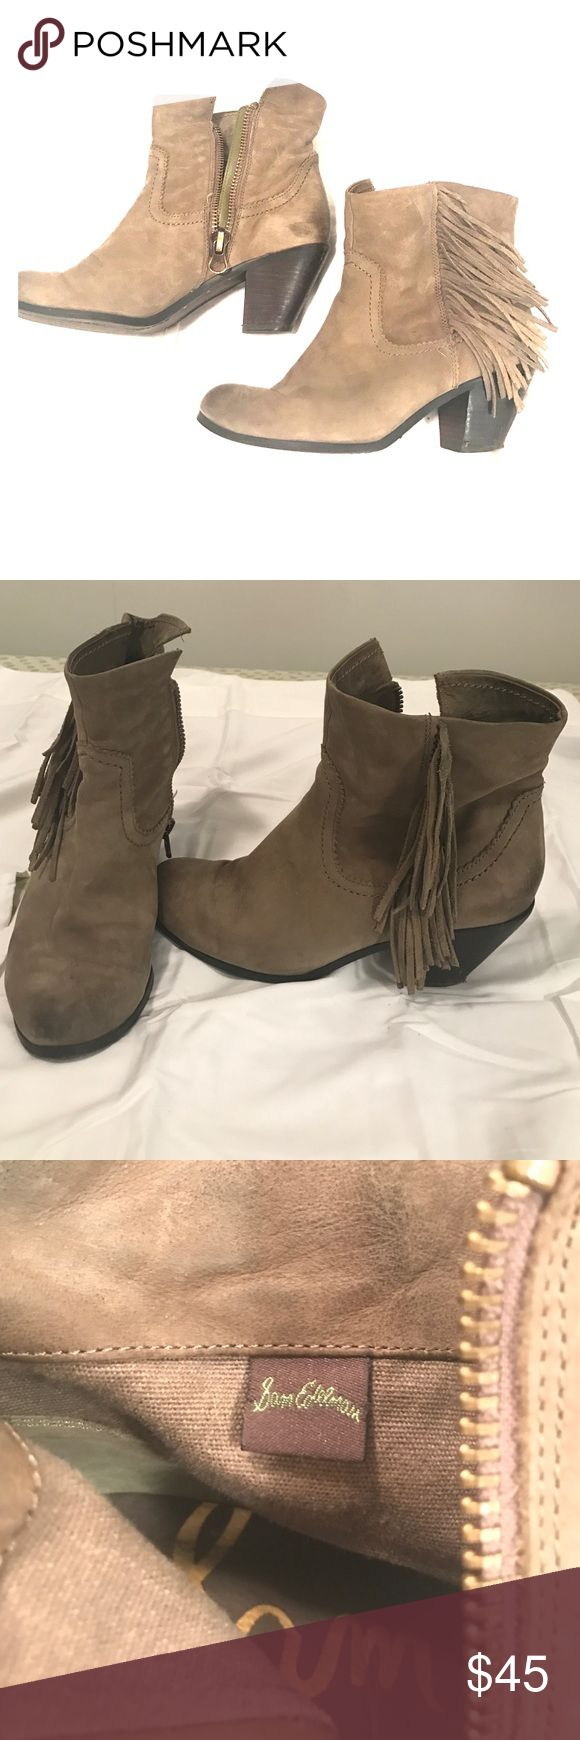 Sam Edelman Women's Fringed Louie Bootie Olive Such cute Sam Edelman boots with a fringe detail. Zip up to the ankle. Olive/khaki neutral color that goes with everything. Heel about 1.5 inches Sam Edelman Shoes Ankle Boots & Booties